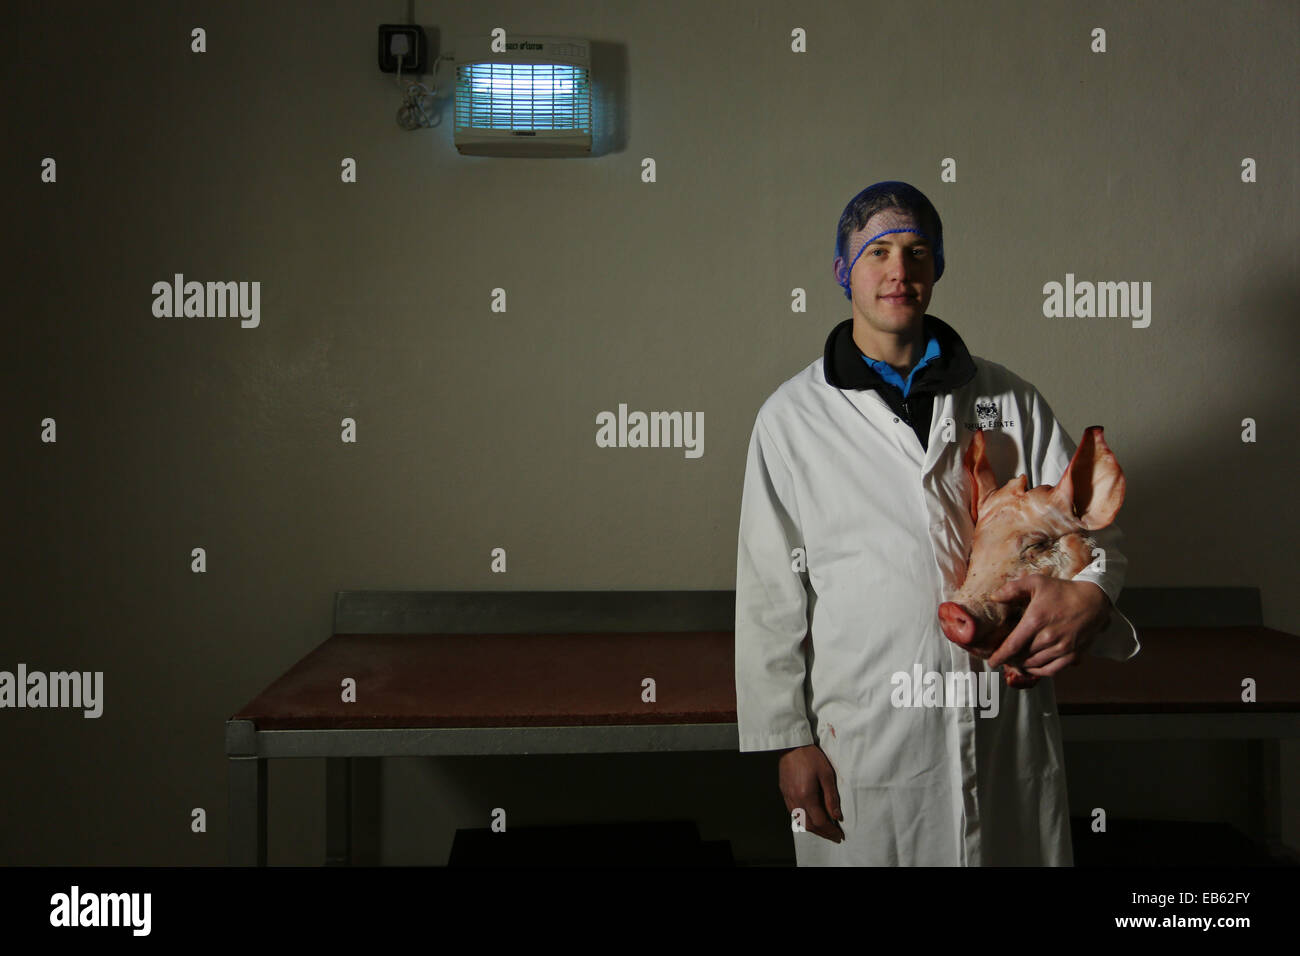 Butcher displays a butchered pigs head in packing area of abattoir. - Stock Image